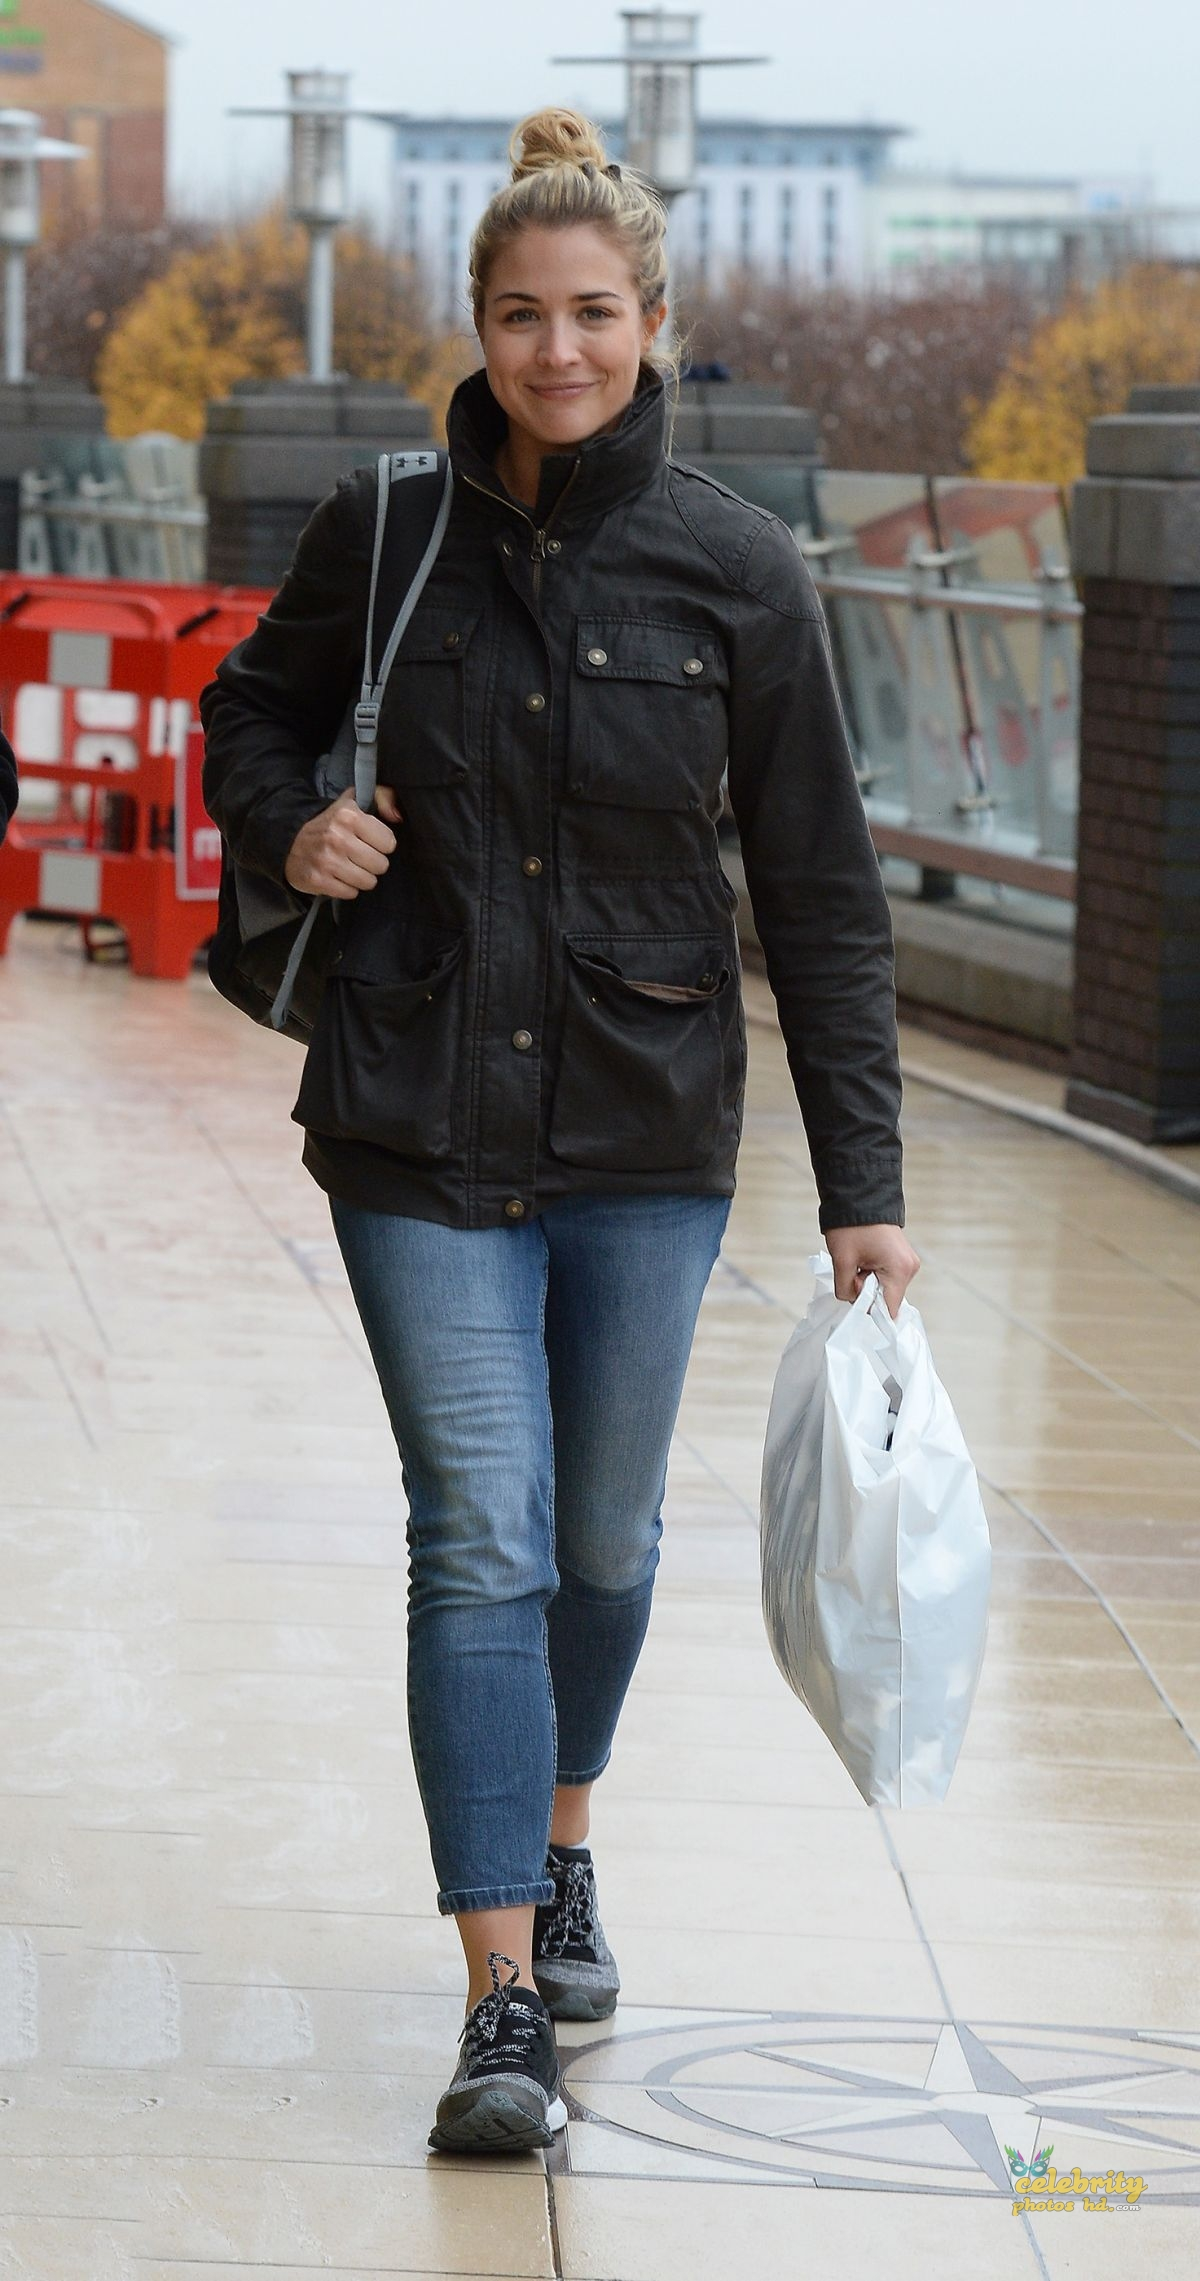 GEMMA ATKINSON in London (2)